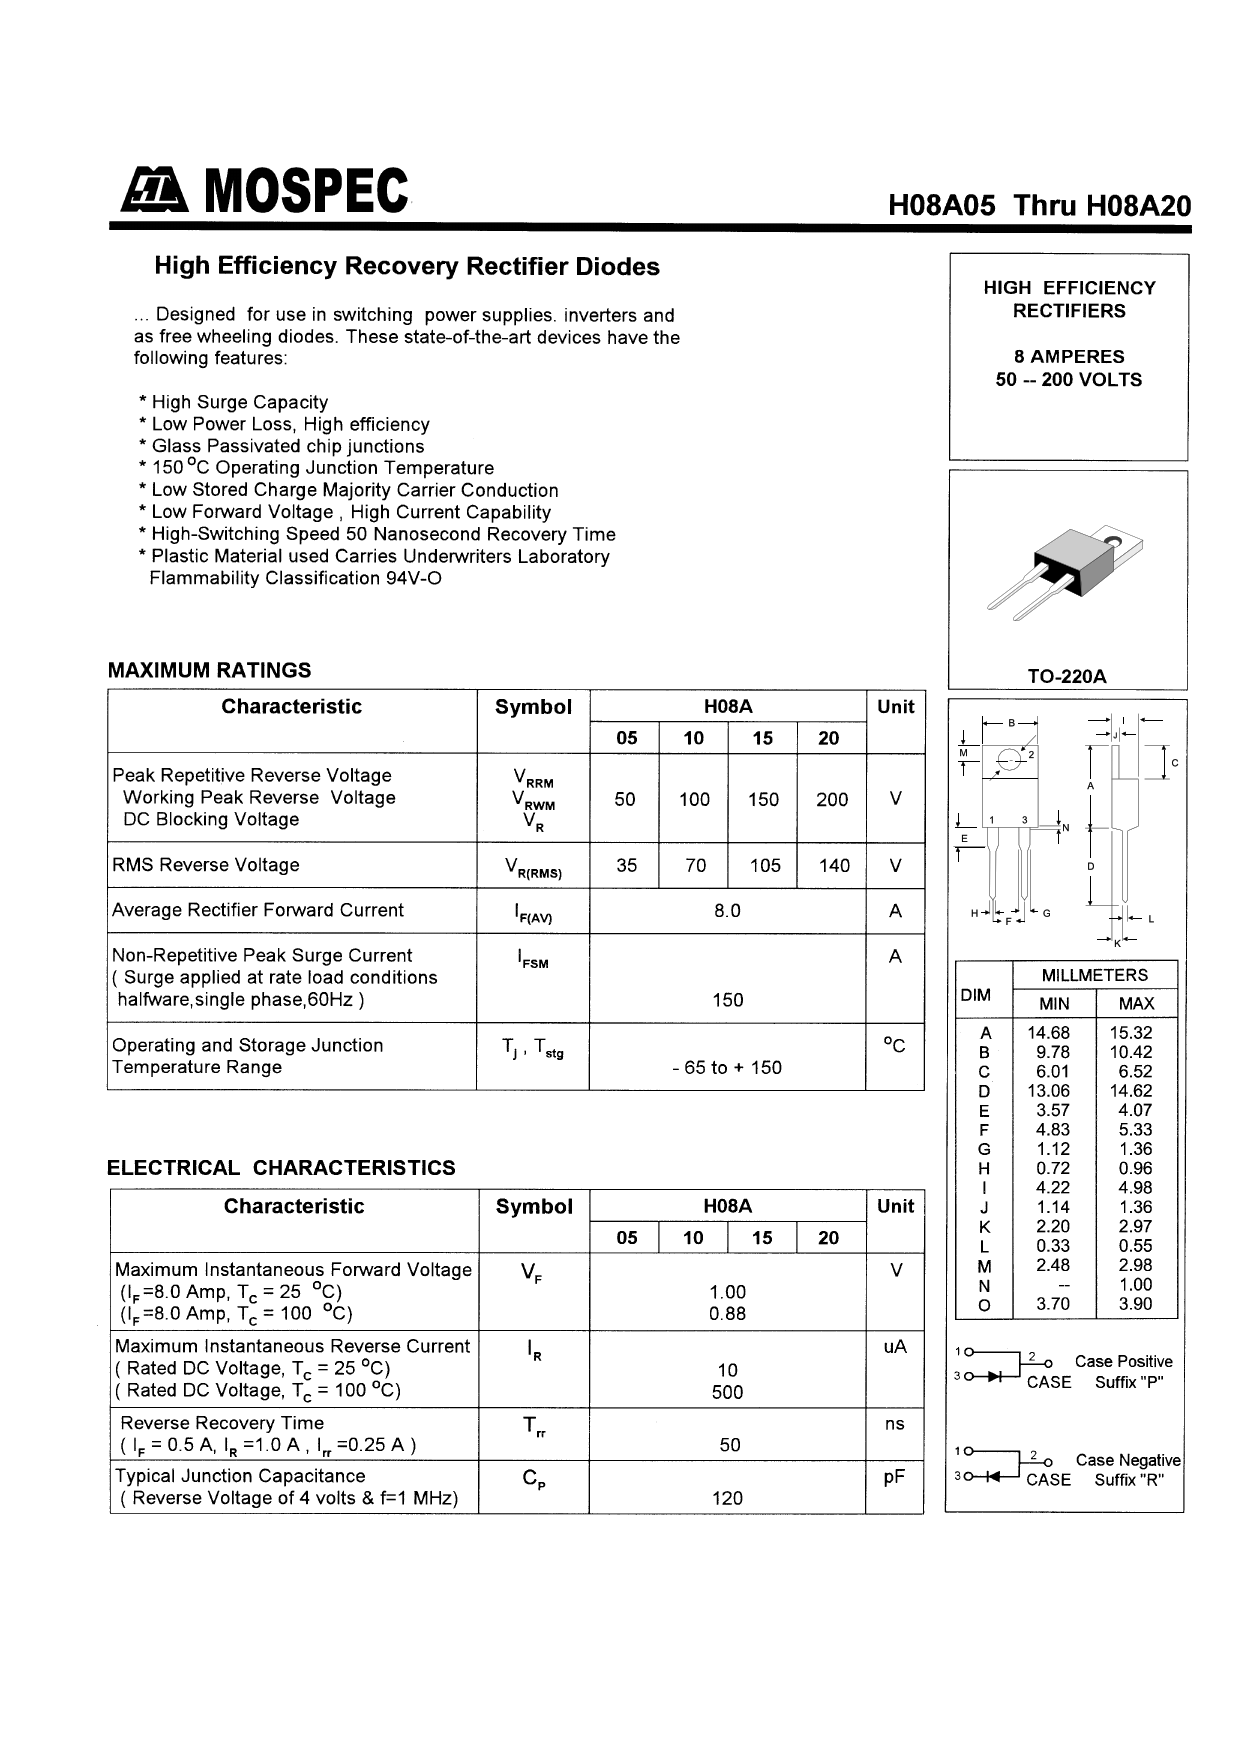 H08A10 Hoja de datos, Descripción, Manual